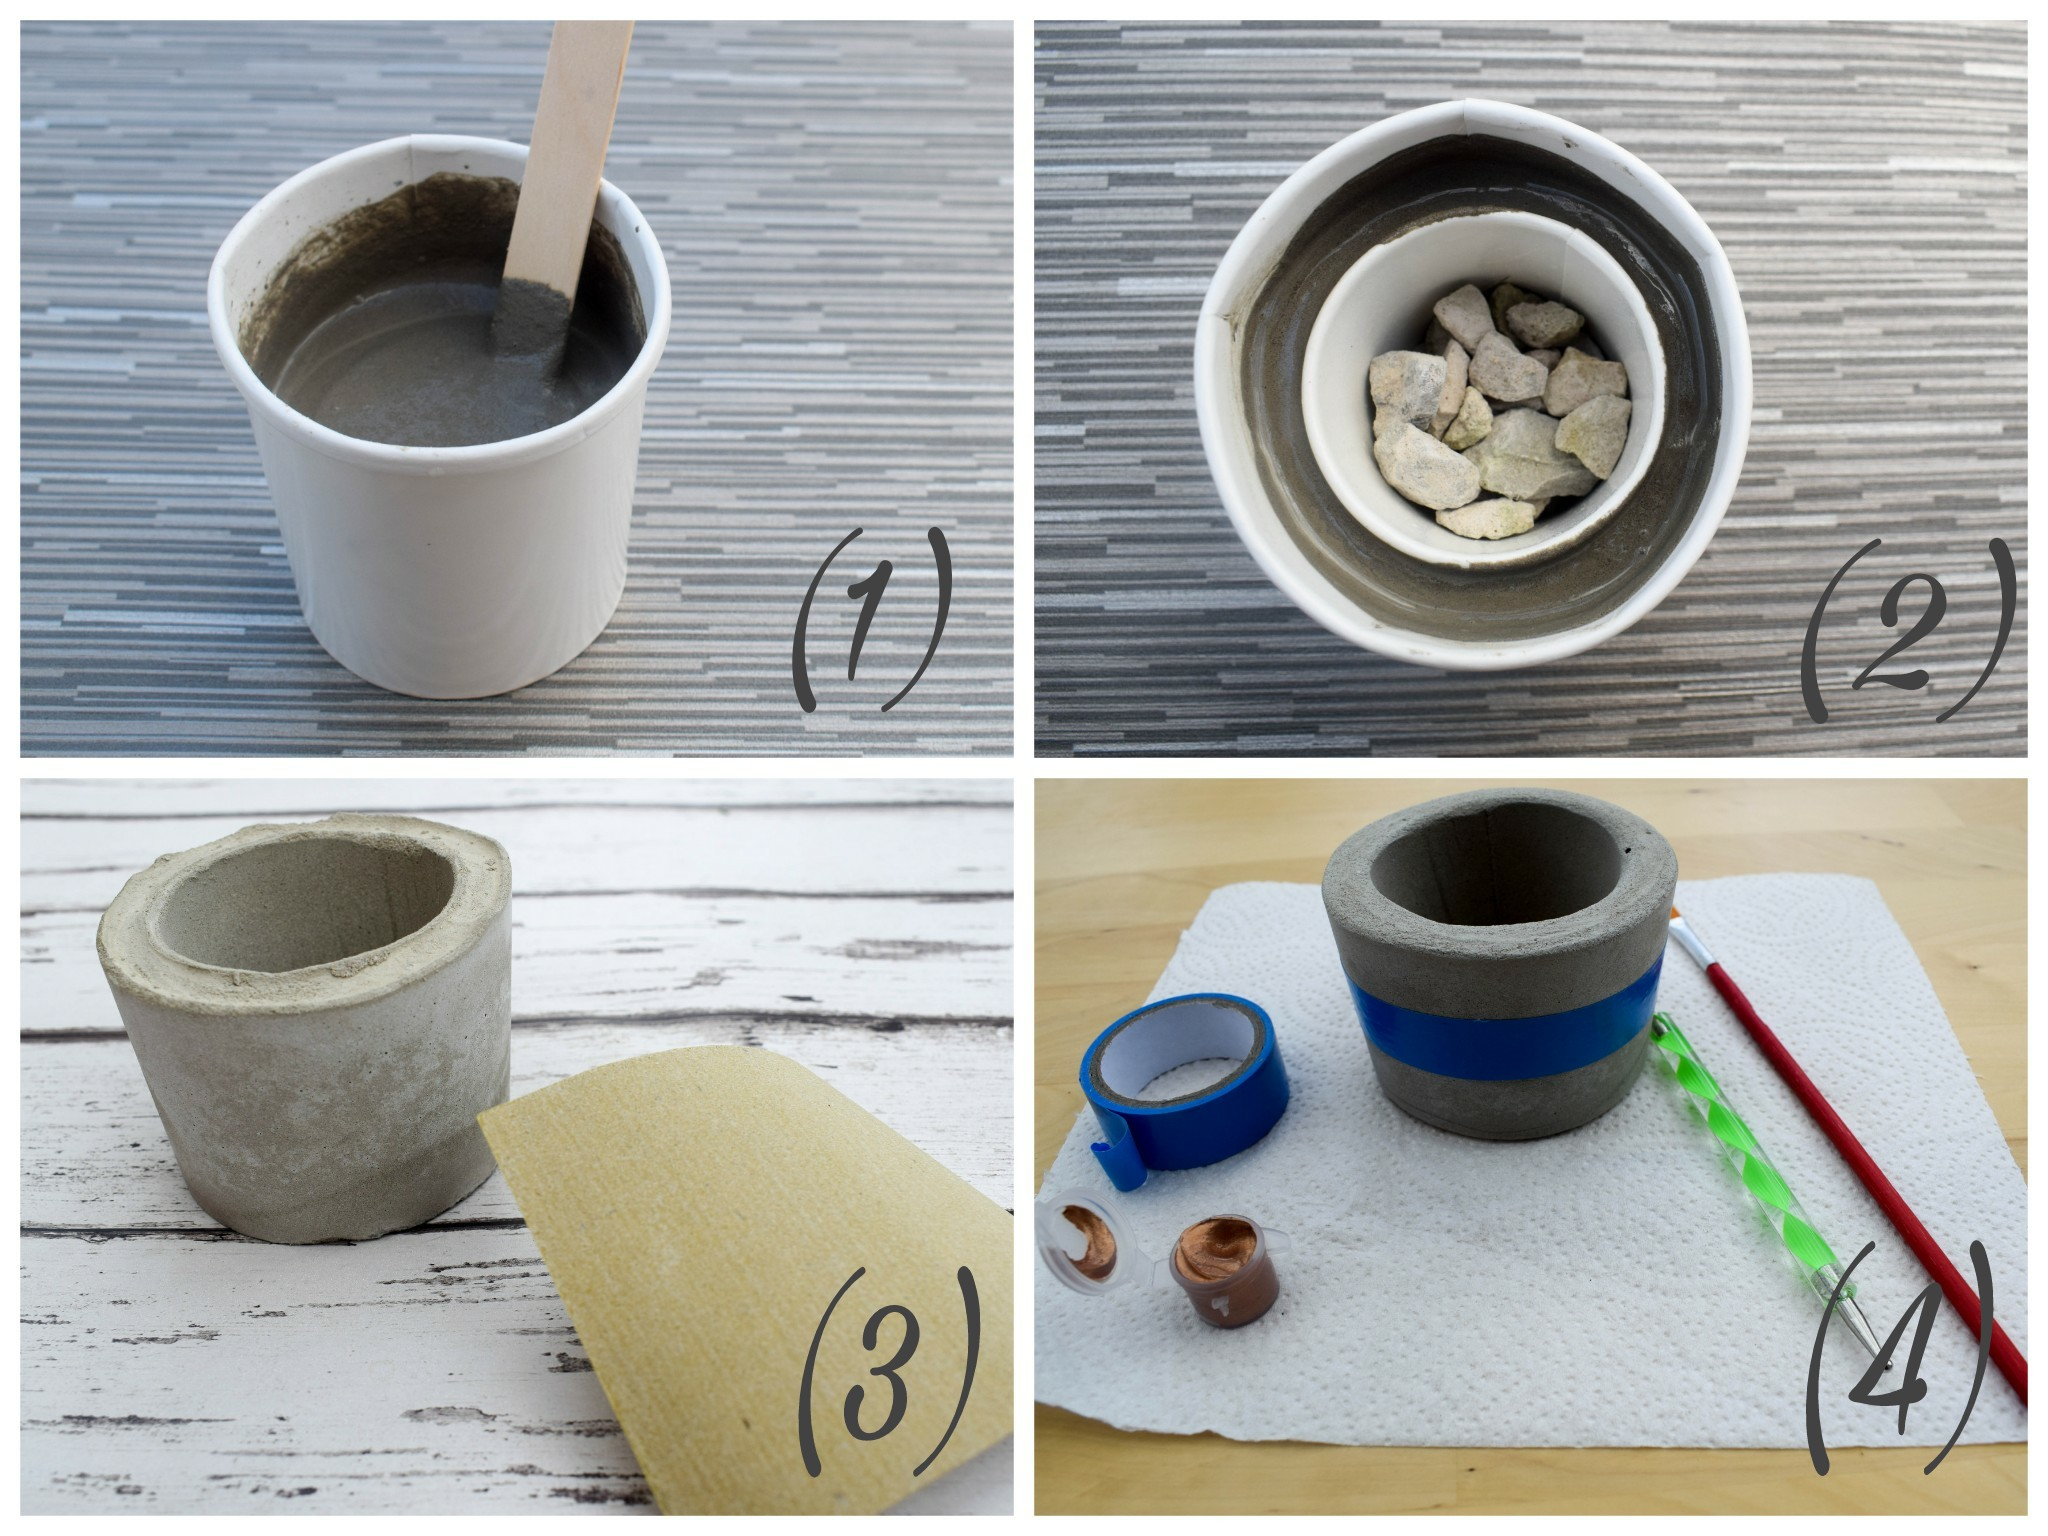 concrete planter kit - how to in pictures